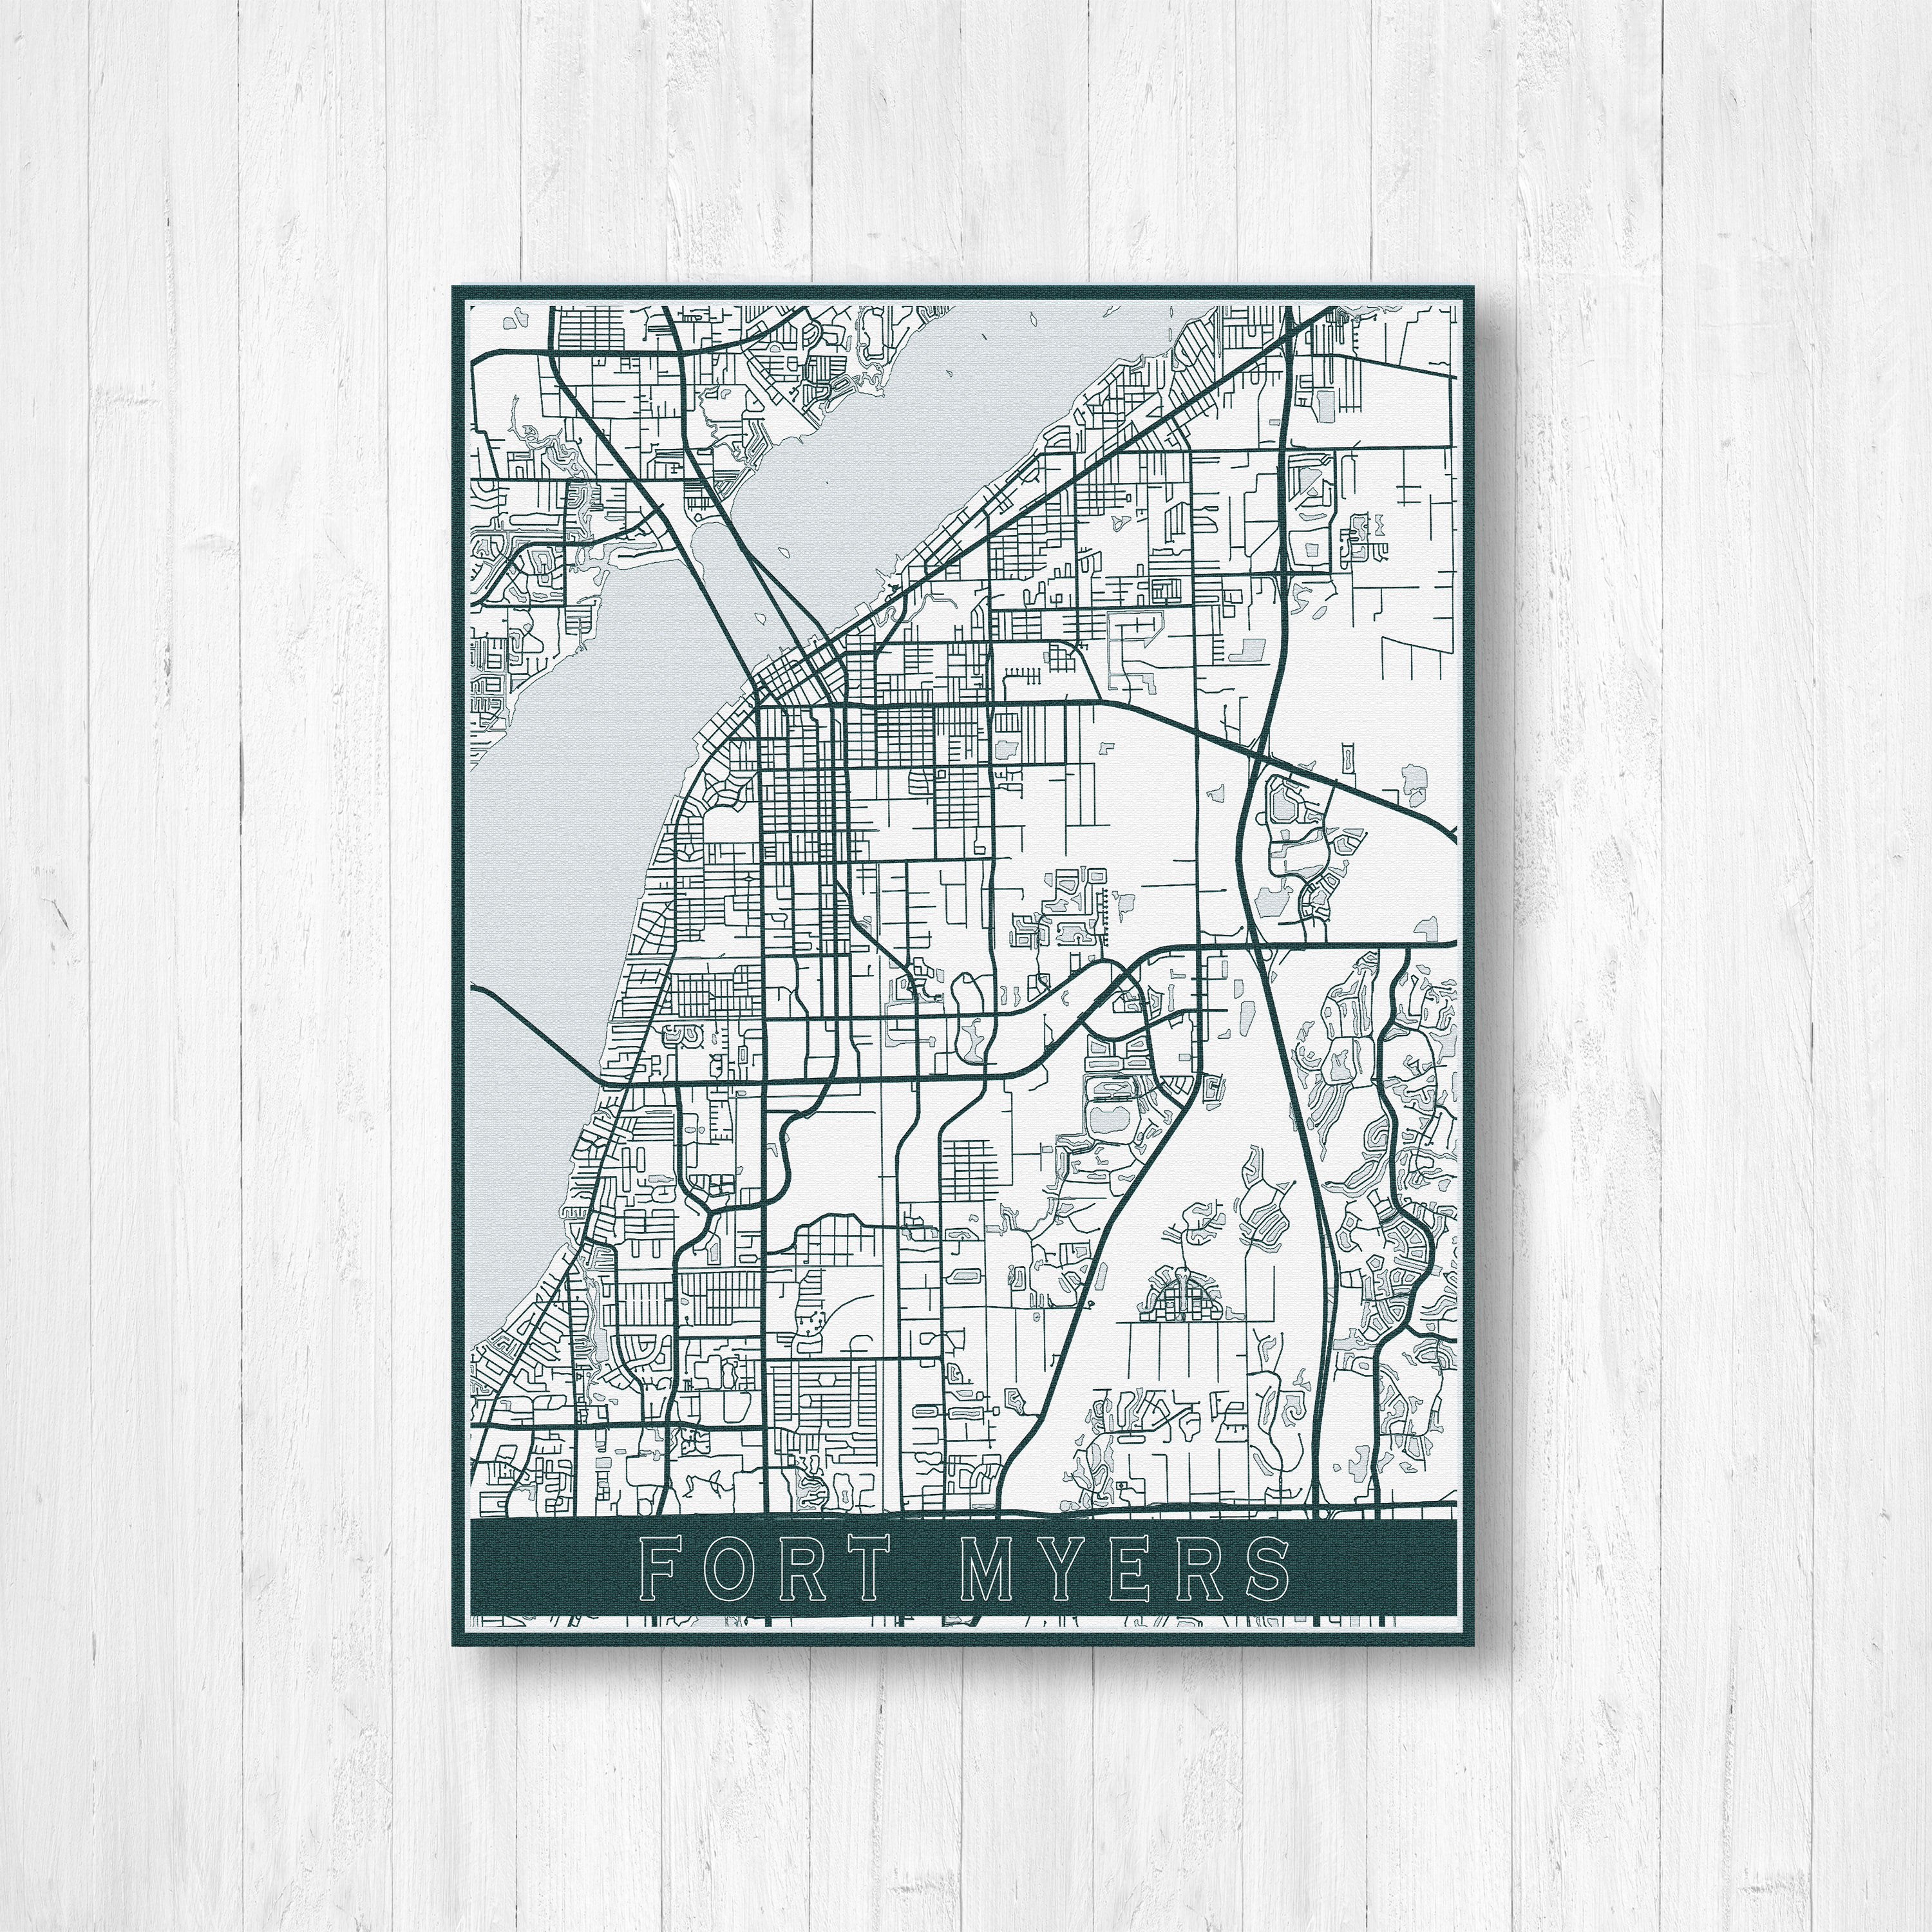 Fort Myers Florida Street Map Print, Fort Myers Map, Fort Myers Map - Street Map Of Fort Myers Florida